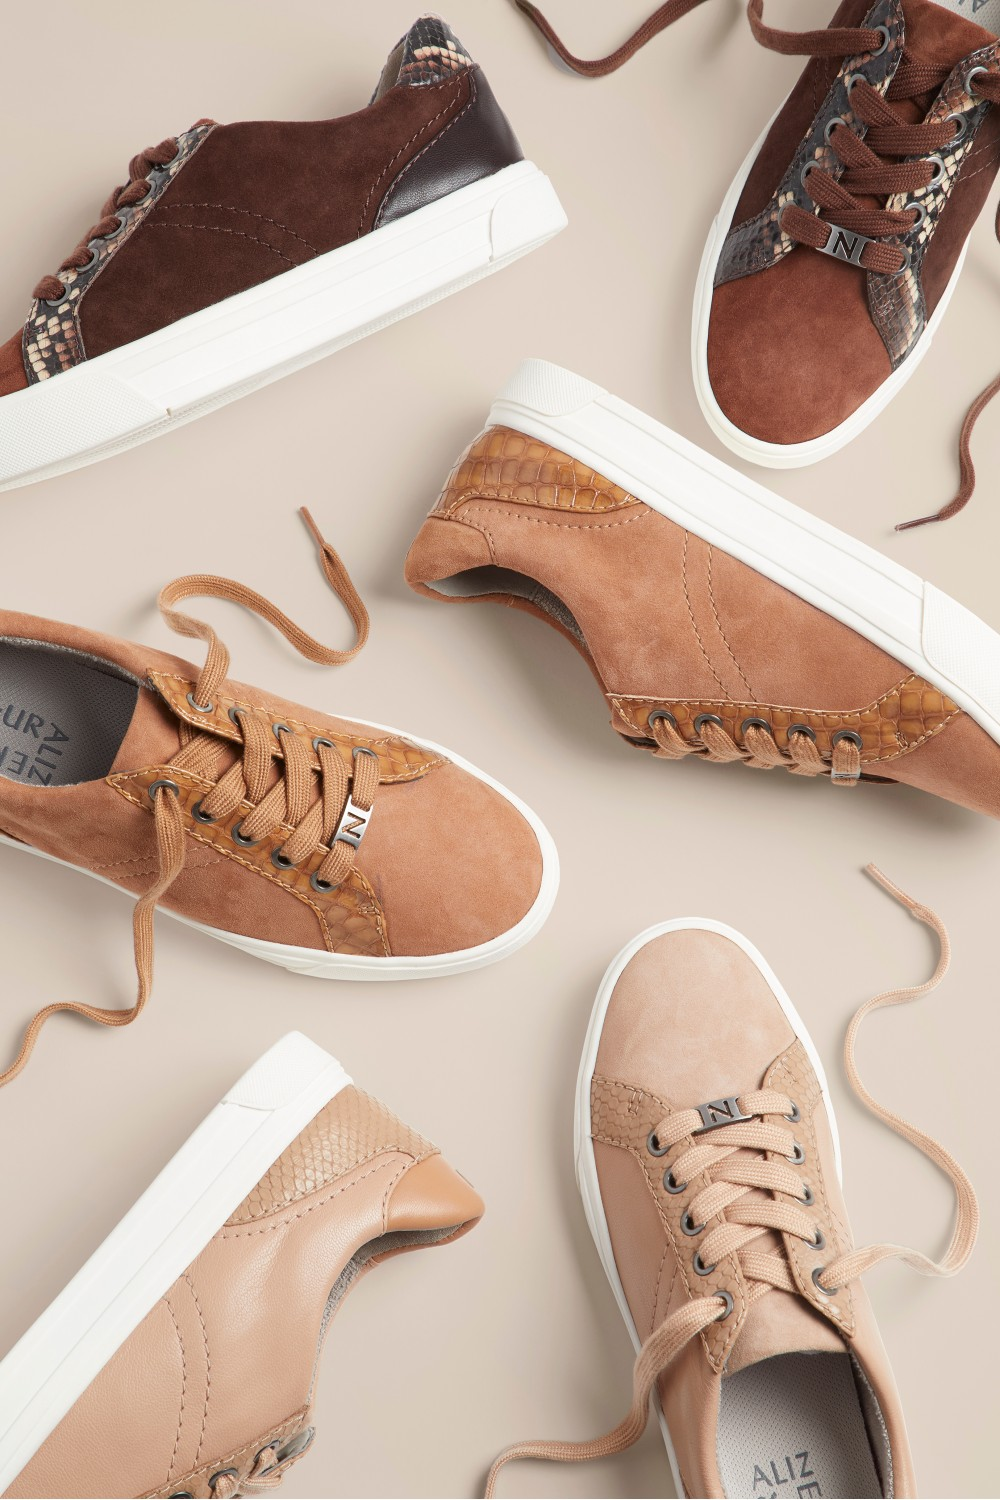 Naturalizer's expanded True Hues collections introduces nude sneakers